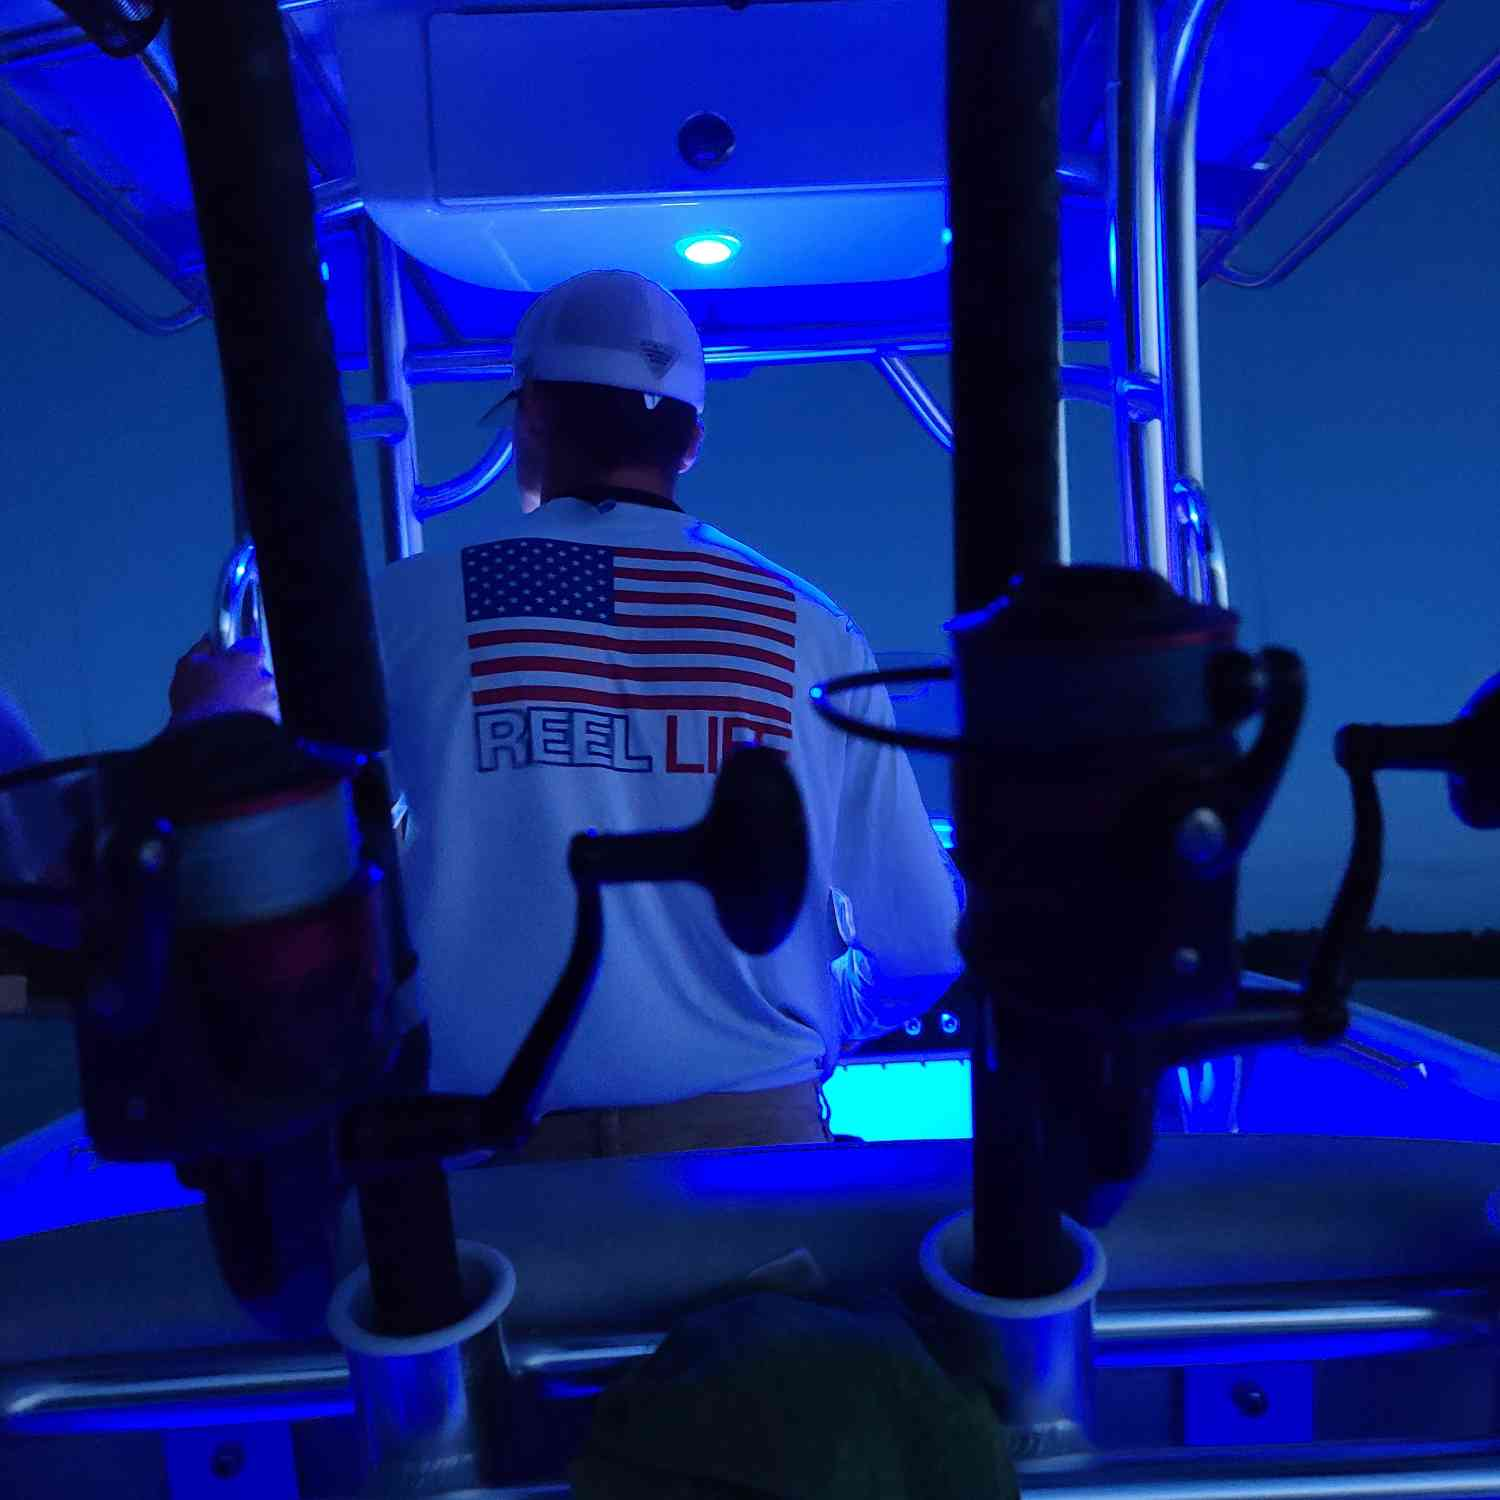 Title: Night fishing - On board their Sportsman Open 242 Center Console - Location: Tangier Sound. Participating in the Photo Contest #SportsmanOctober2020